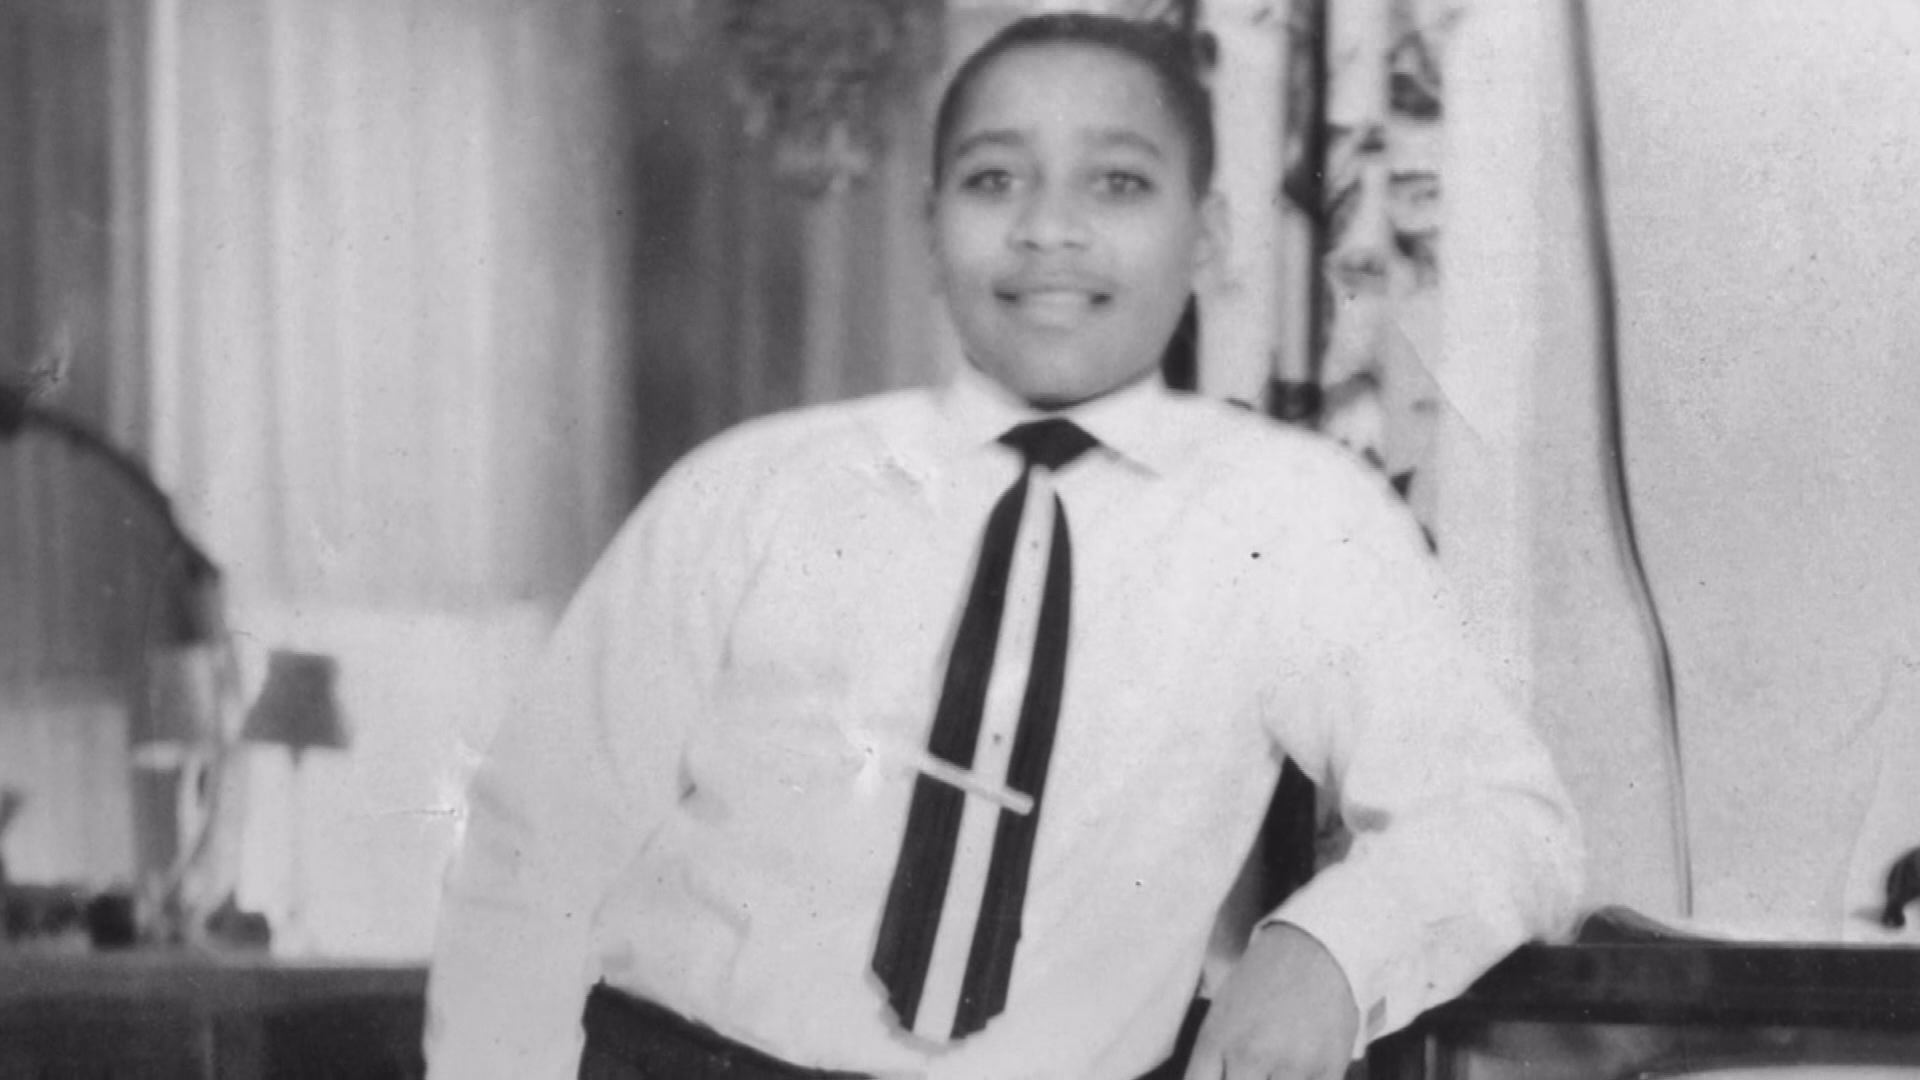 White Woman Who Claimed Emmett Till Harassed Her: 'That Part's Not True'